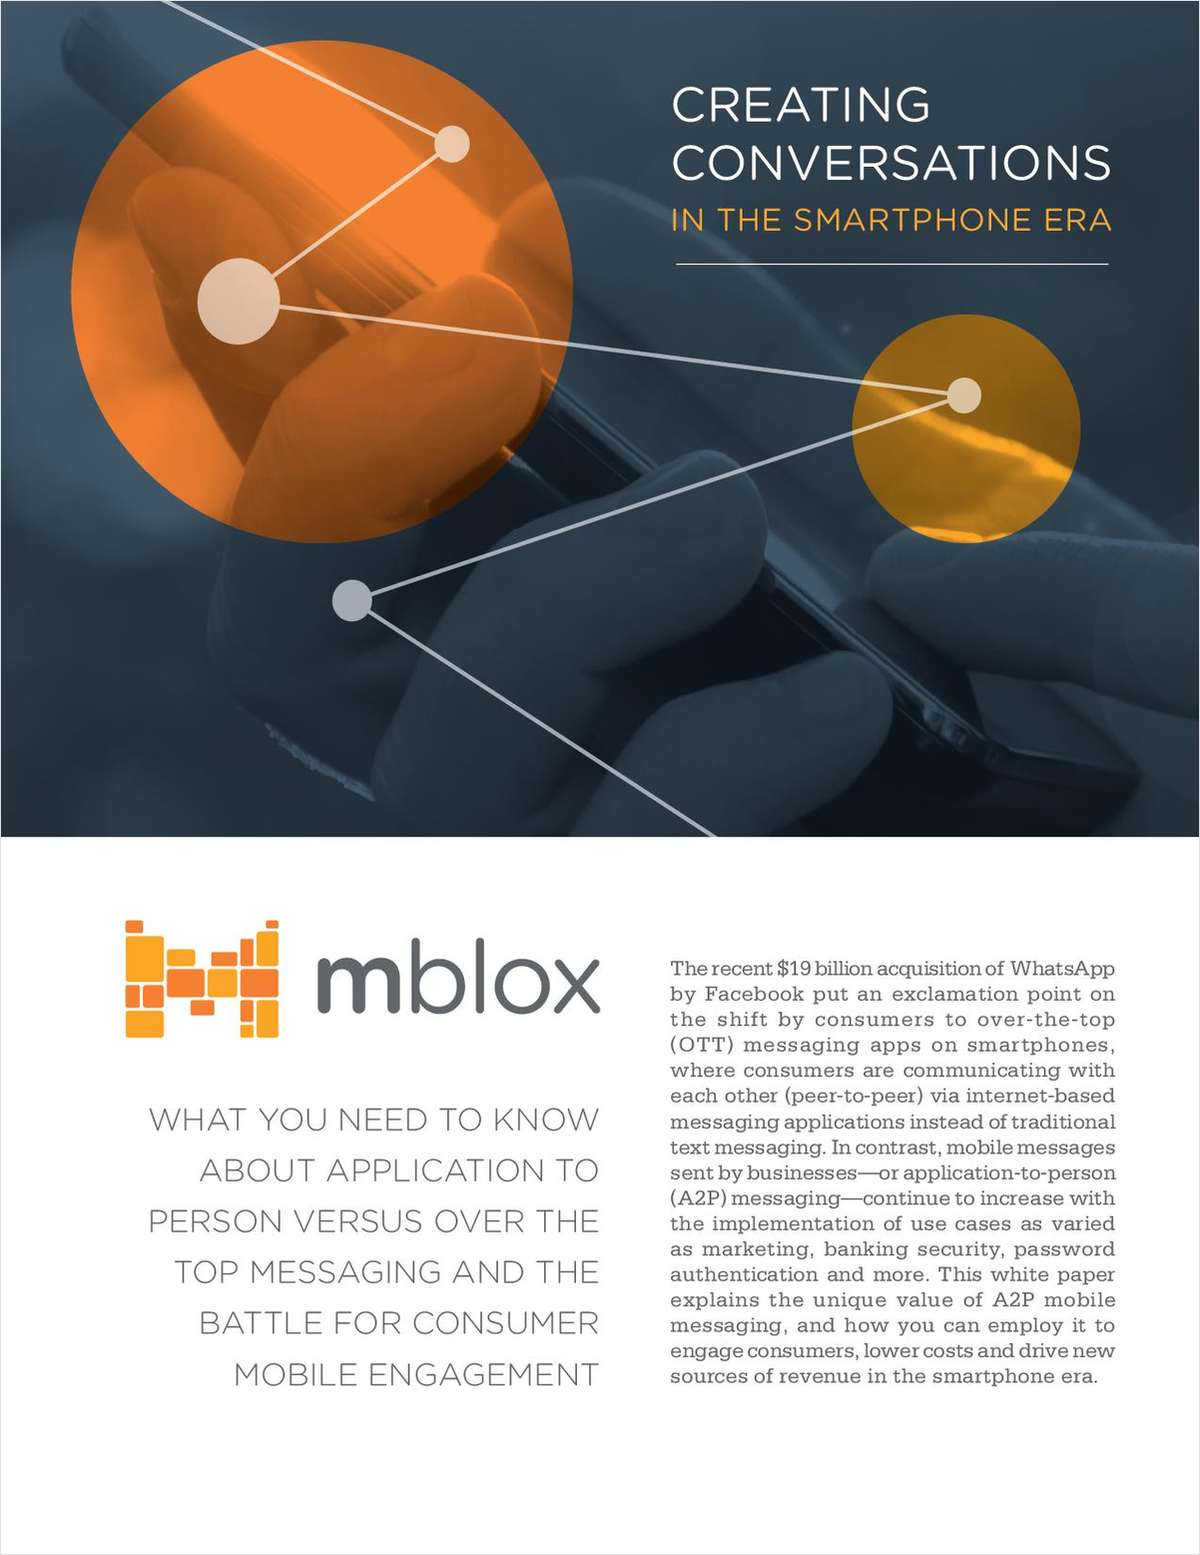 Free Guide: Creating Conversations in the Smartphone Era